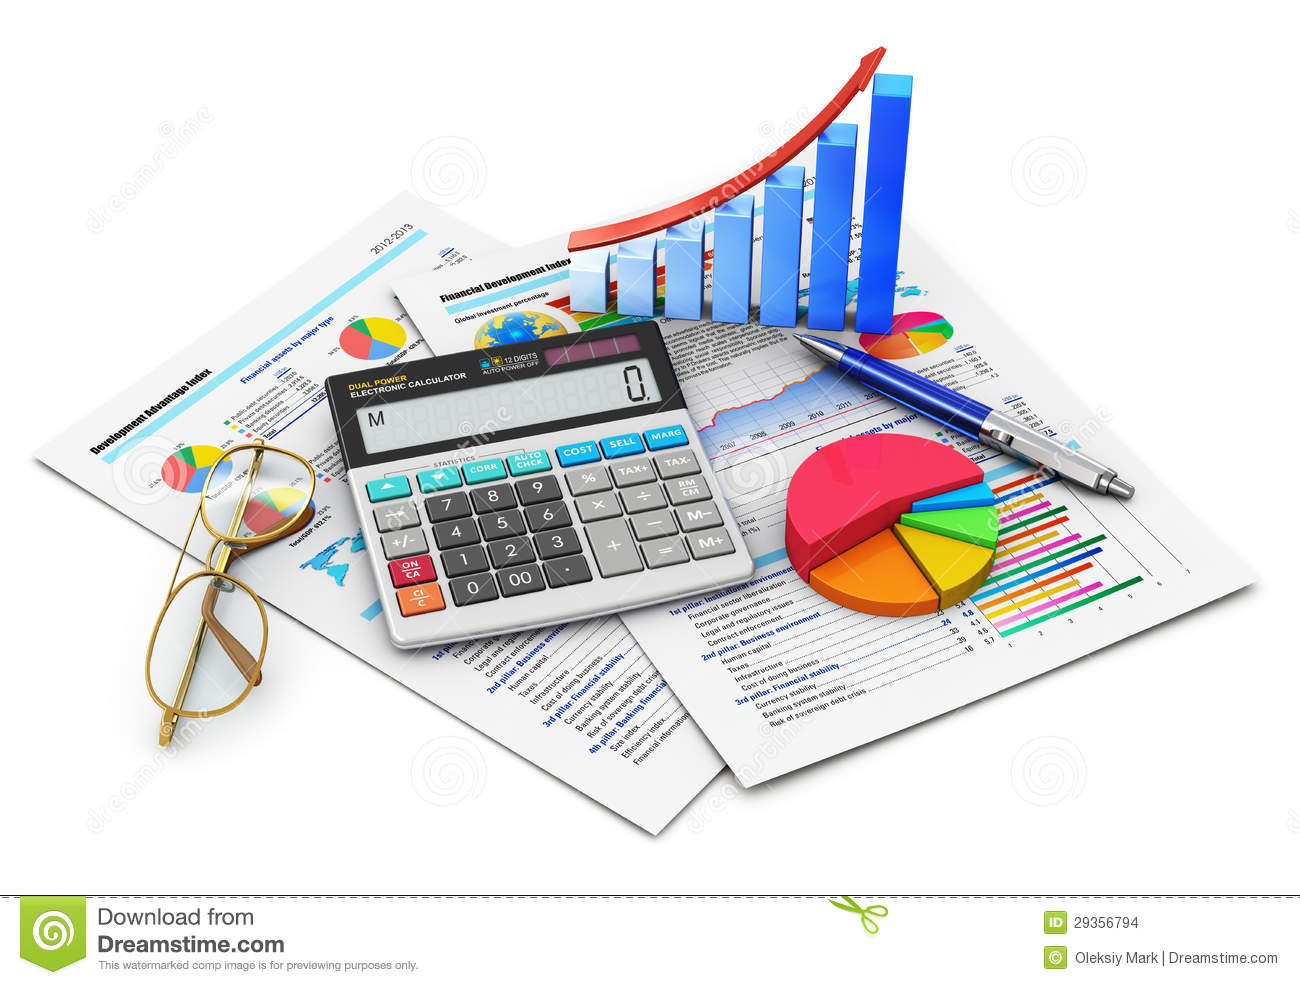 Financial accounting clipart - Clipground